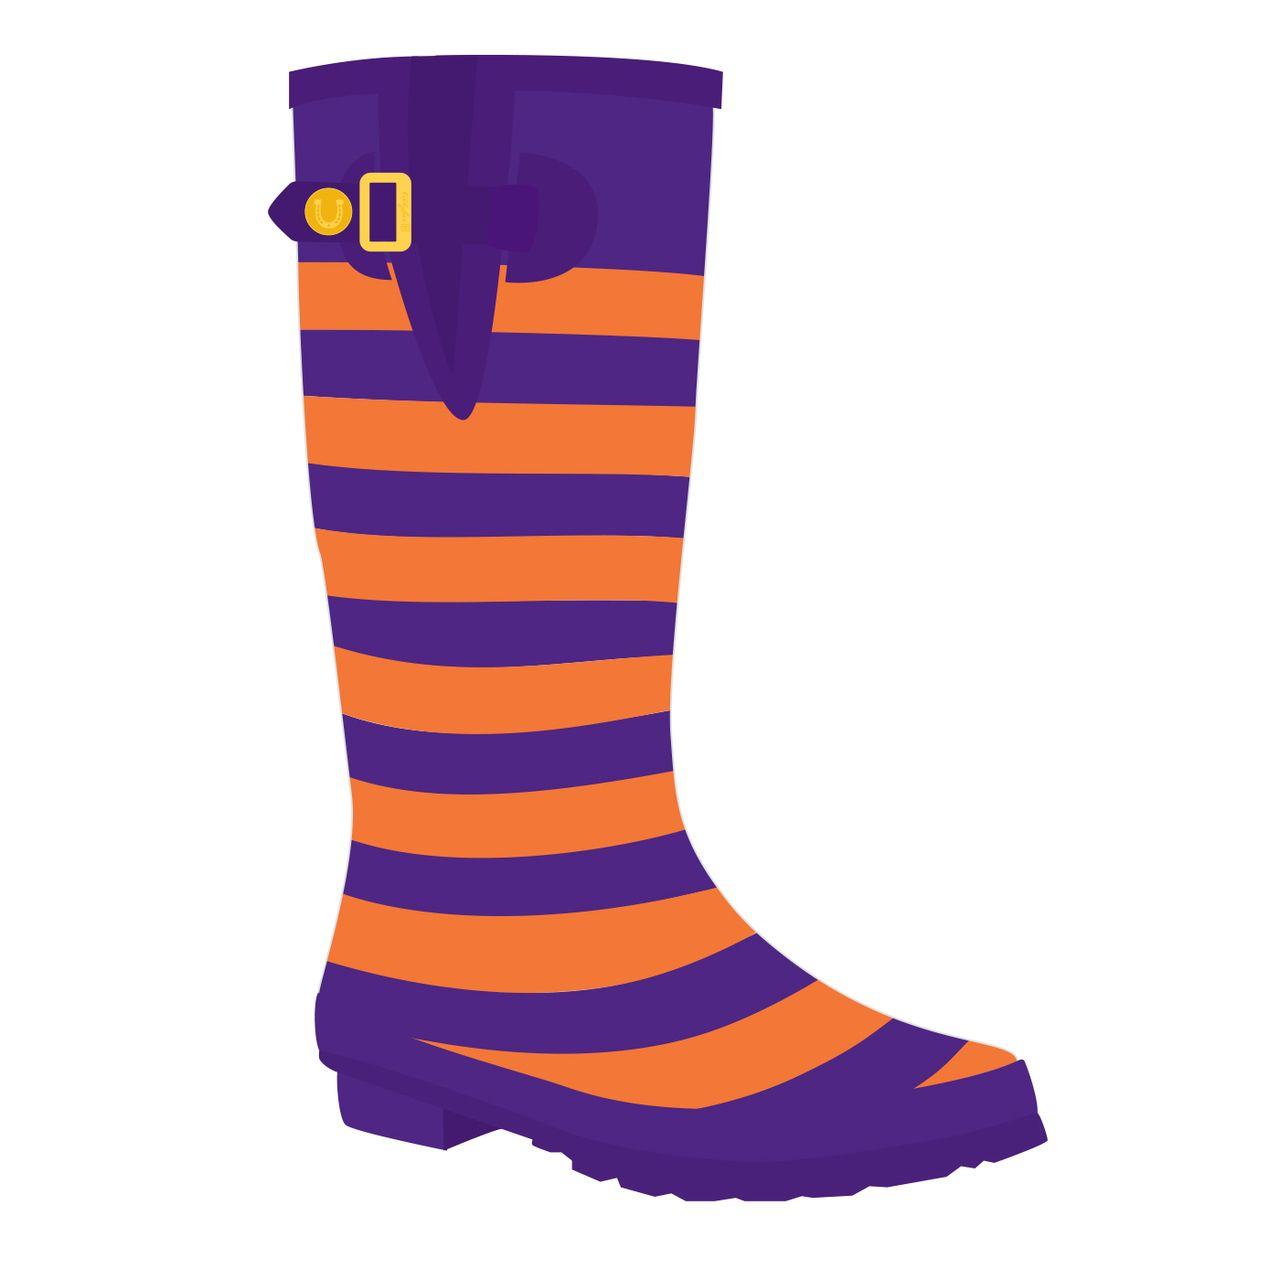 Women's Clemson Tigers Striped ... Boot Slippers 2014 for sale shopping online for sale for sale authentic online geniue stockist IvF0GtGm